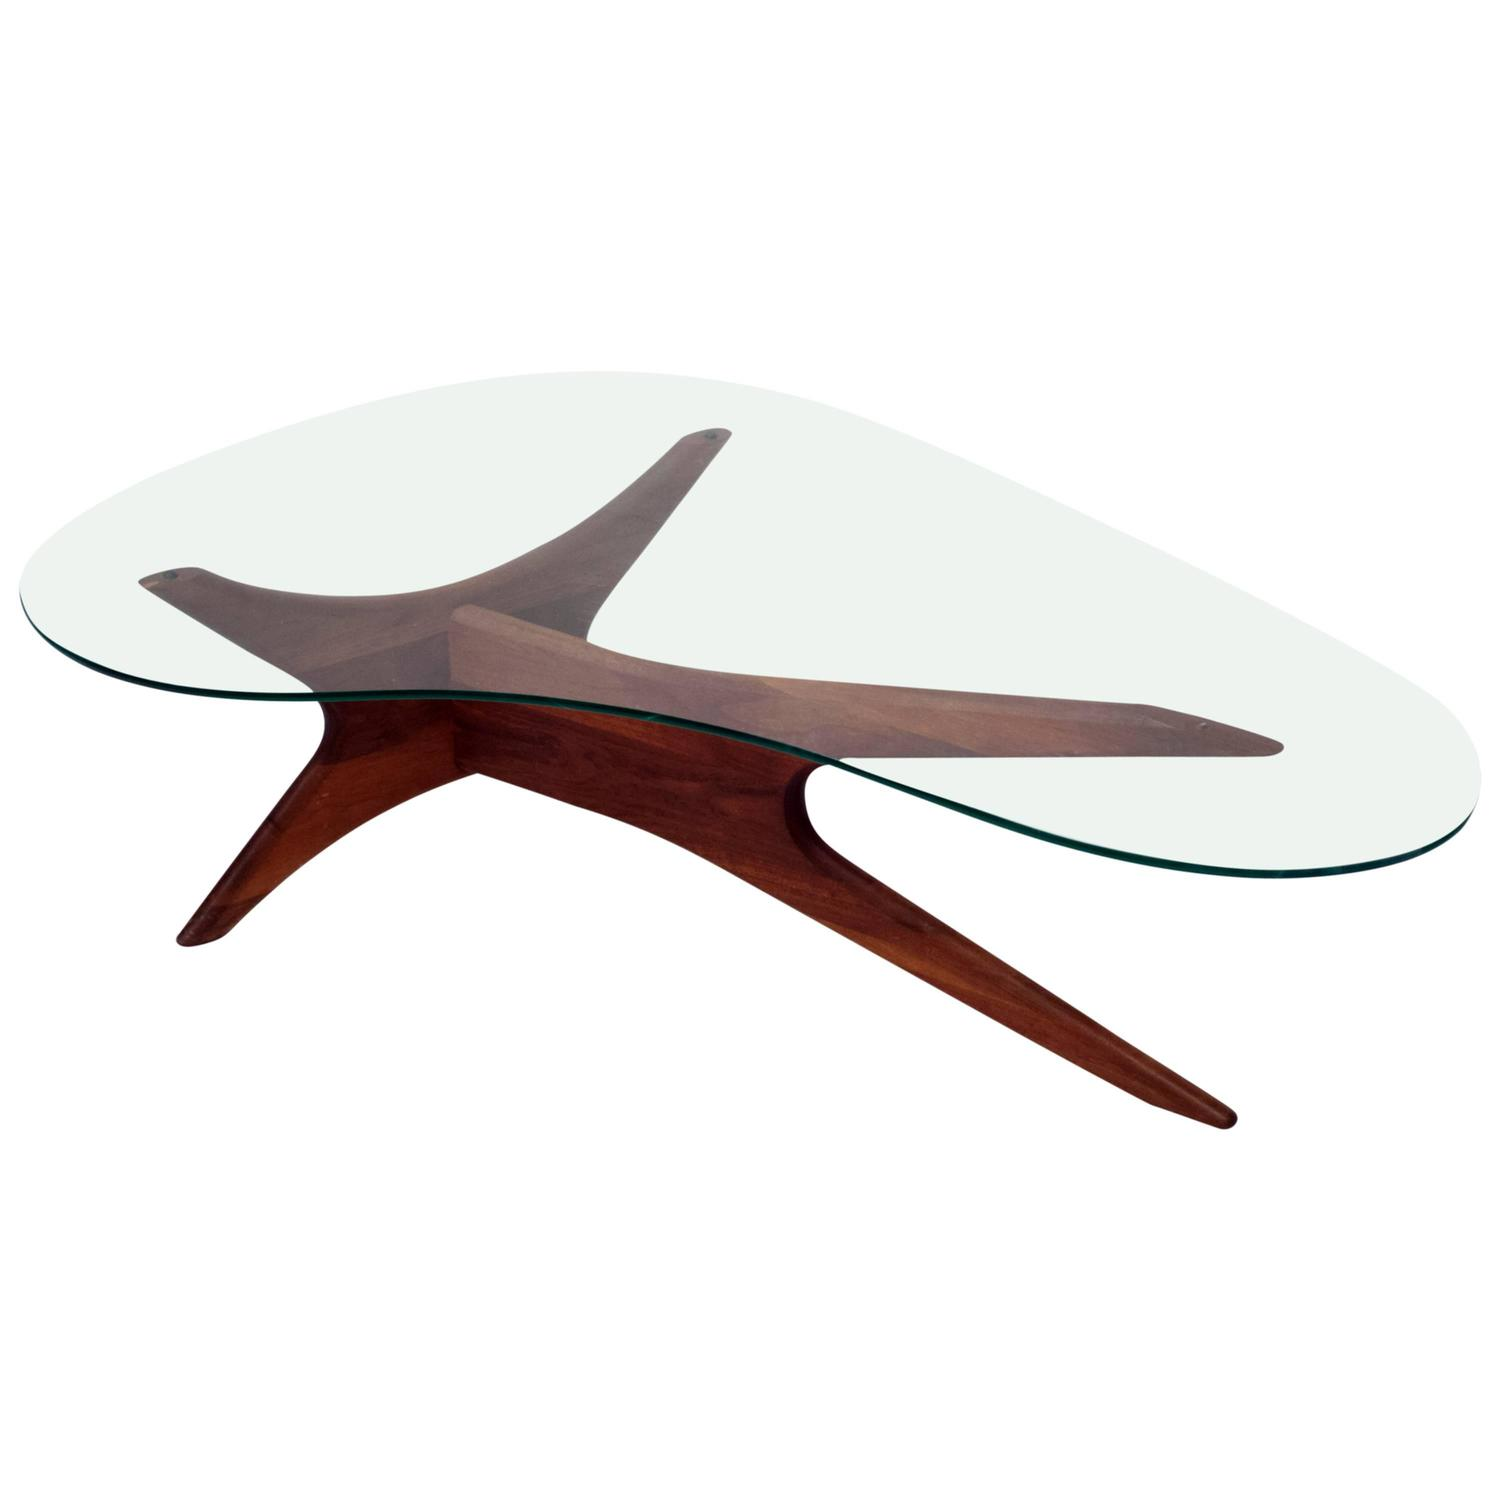 Adrian Pearsall Biomorphic Kidney Shaped Coffee Table At 1stdibs